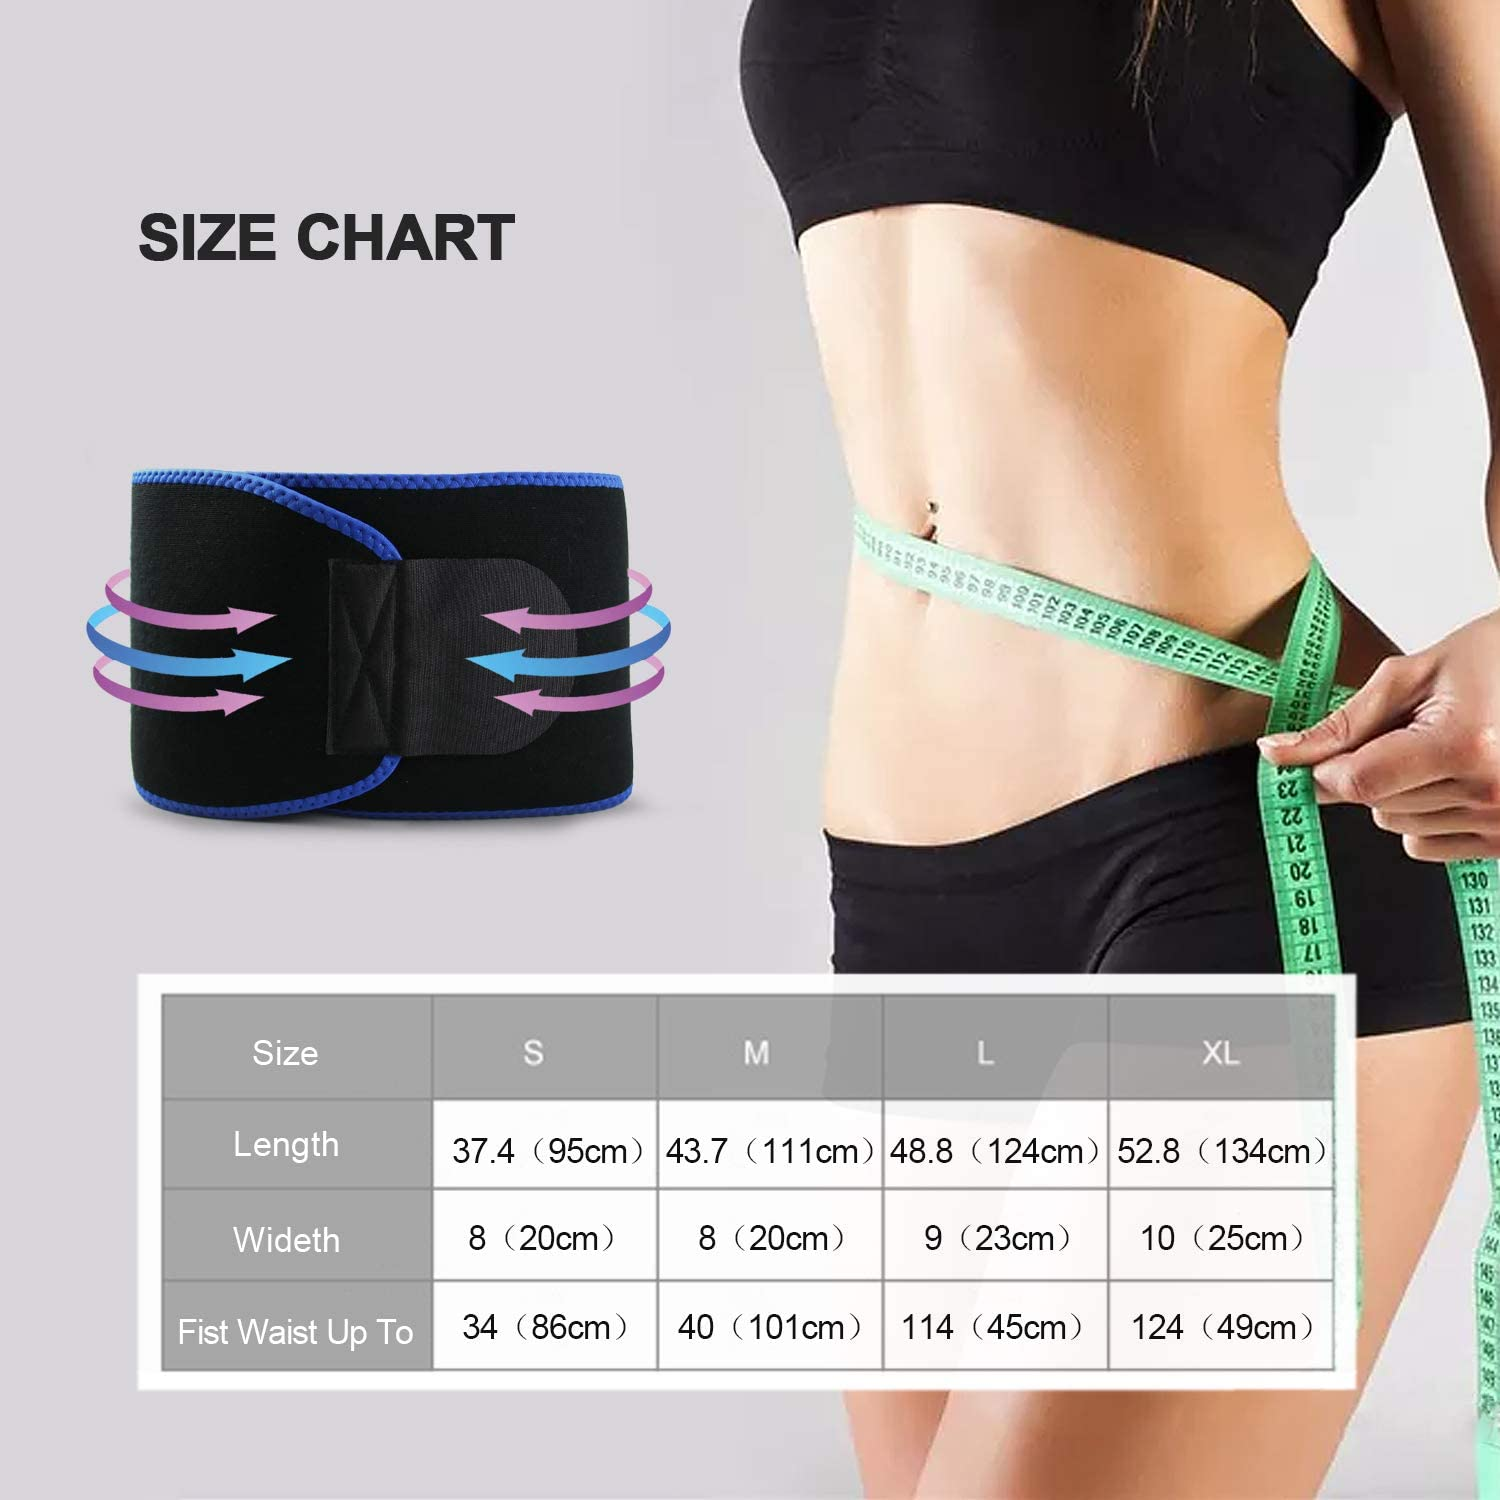 Ufanore Waist Trainer Belt for Women Body Shaper Sweat Waist Trimmer for Weight Loss Breathable Abdominal and Low Back Support